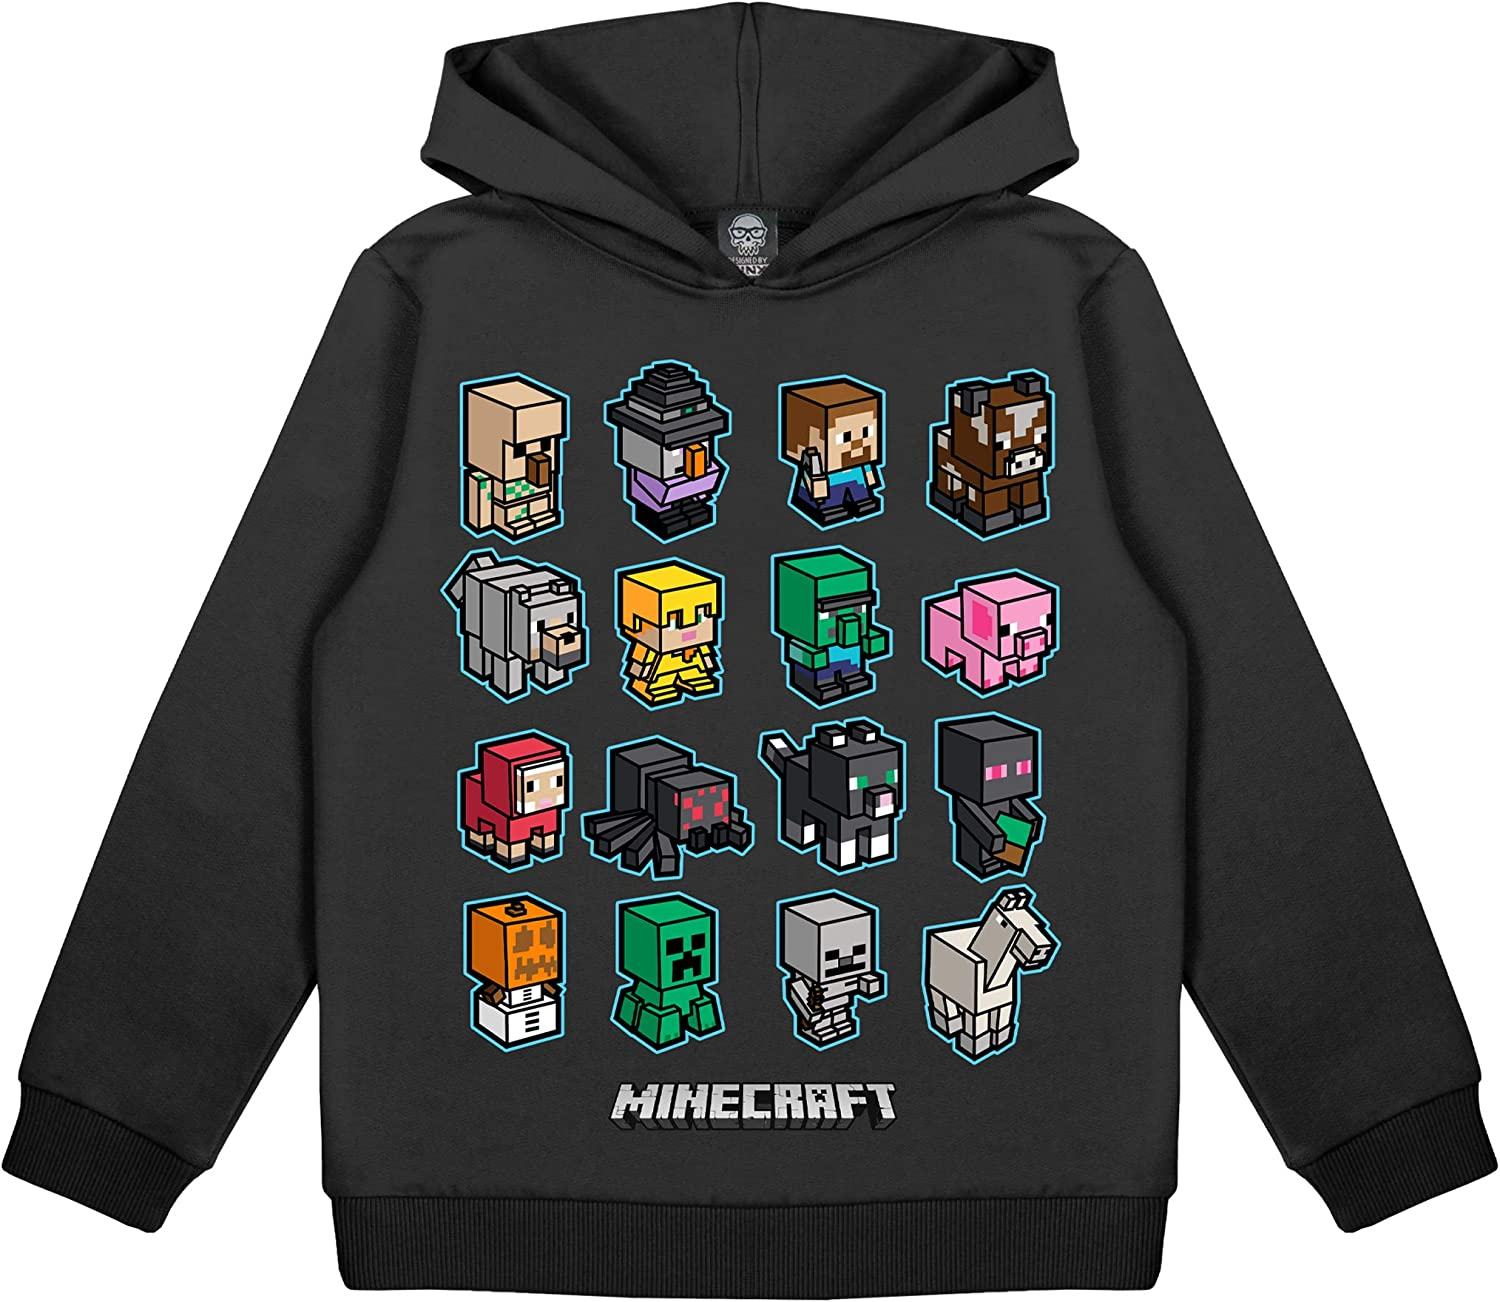 Minecraft Mini Mobs Boys Pullover Hoodie  Official Merchandise  PS10 PS10  Xbox PC Switch Gamer Gifts, Teen School Boys Gaming Hooded Sweatshirt,